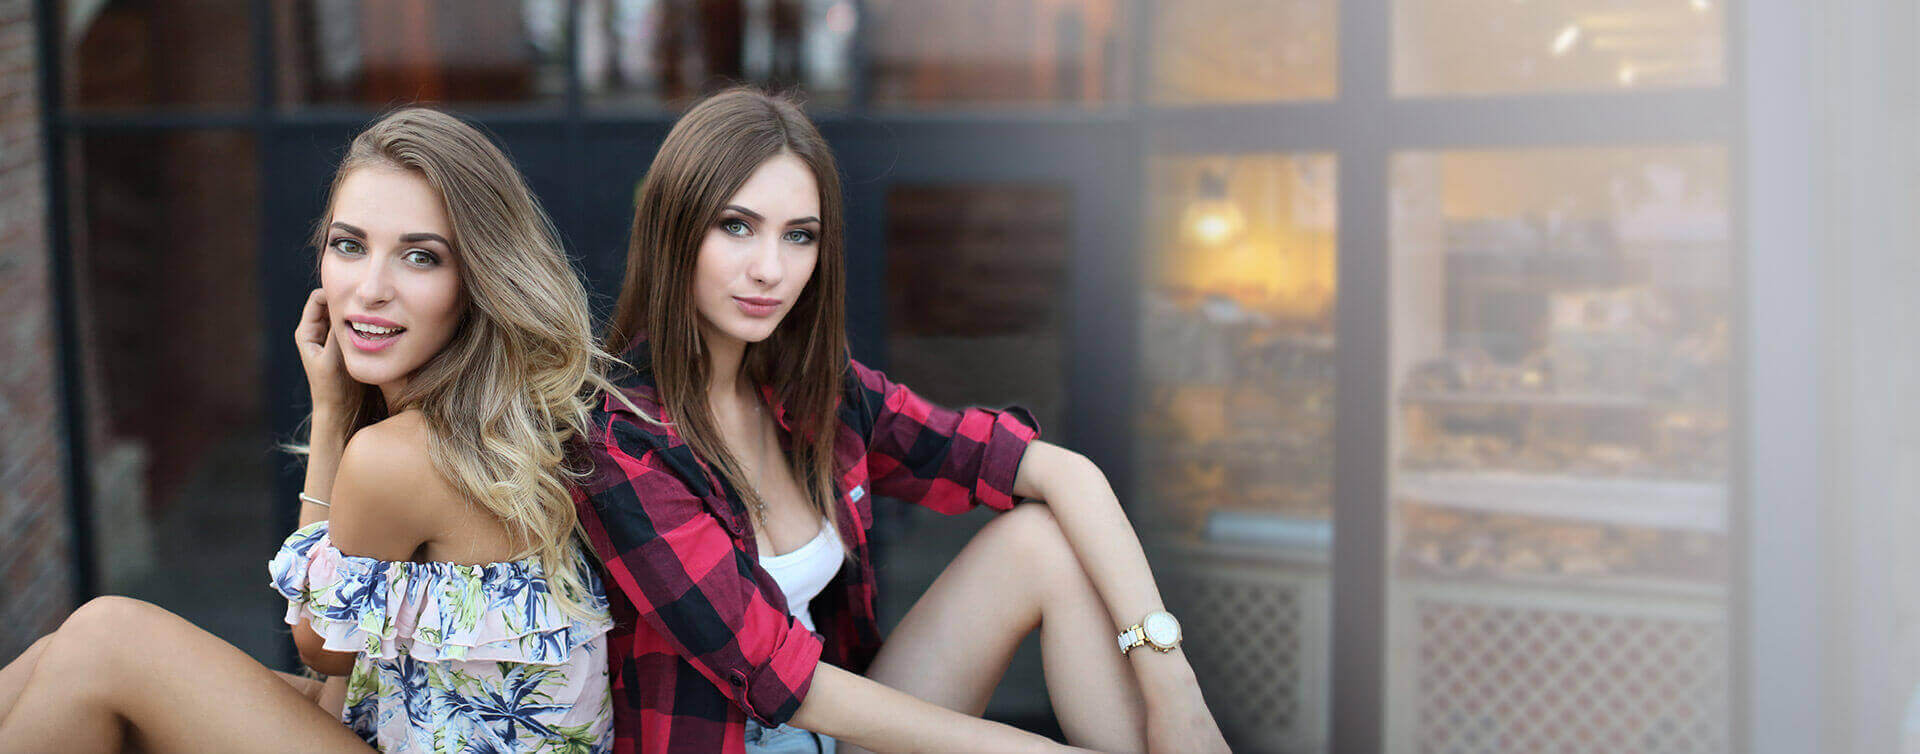 from Sean elenas models dating site